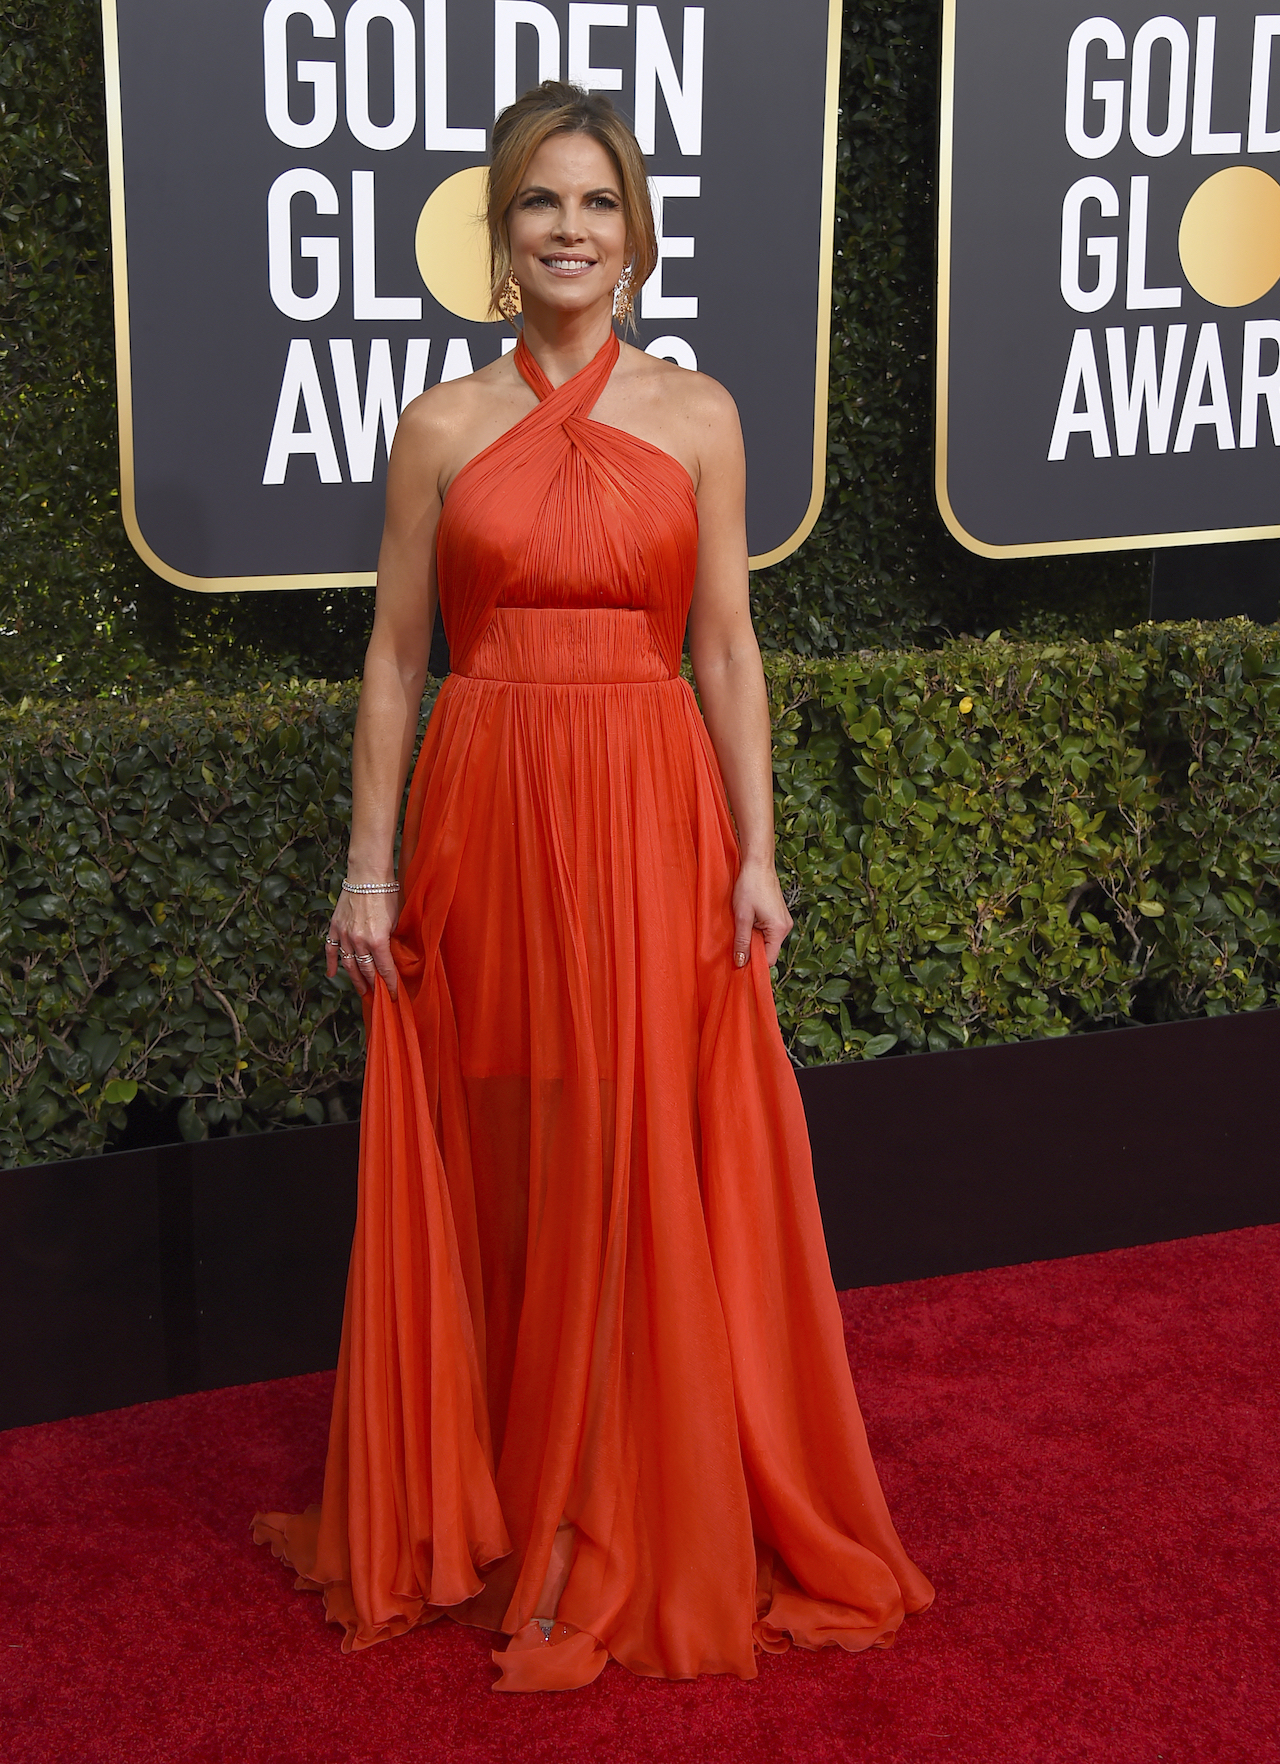 <div class='meta'><div class='origin-logo' data-origin='AP'></div><span class='caption-text' data-credit='Jordan Strauss/Invision/AP'>Natalie Morales arrives at the 76th annual Golden Globe Awards at the Beverly Hilton Hotel on Sunday, Jan. 6, 2019, in Beverly Hills, Calif.</span></div>